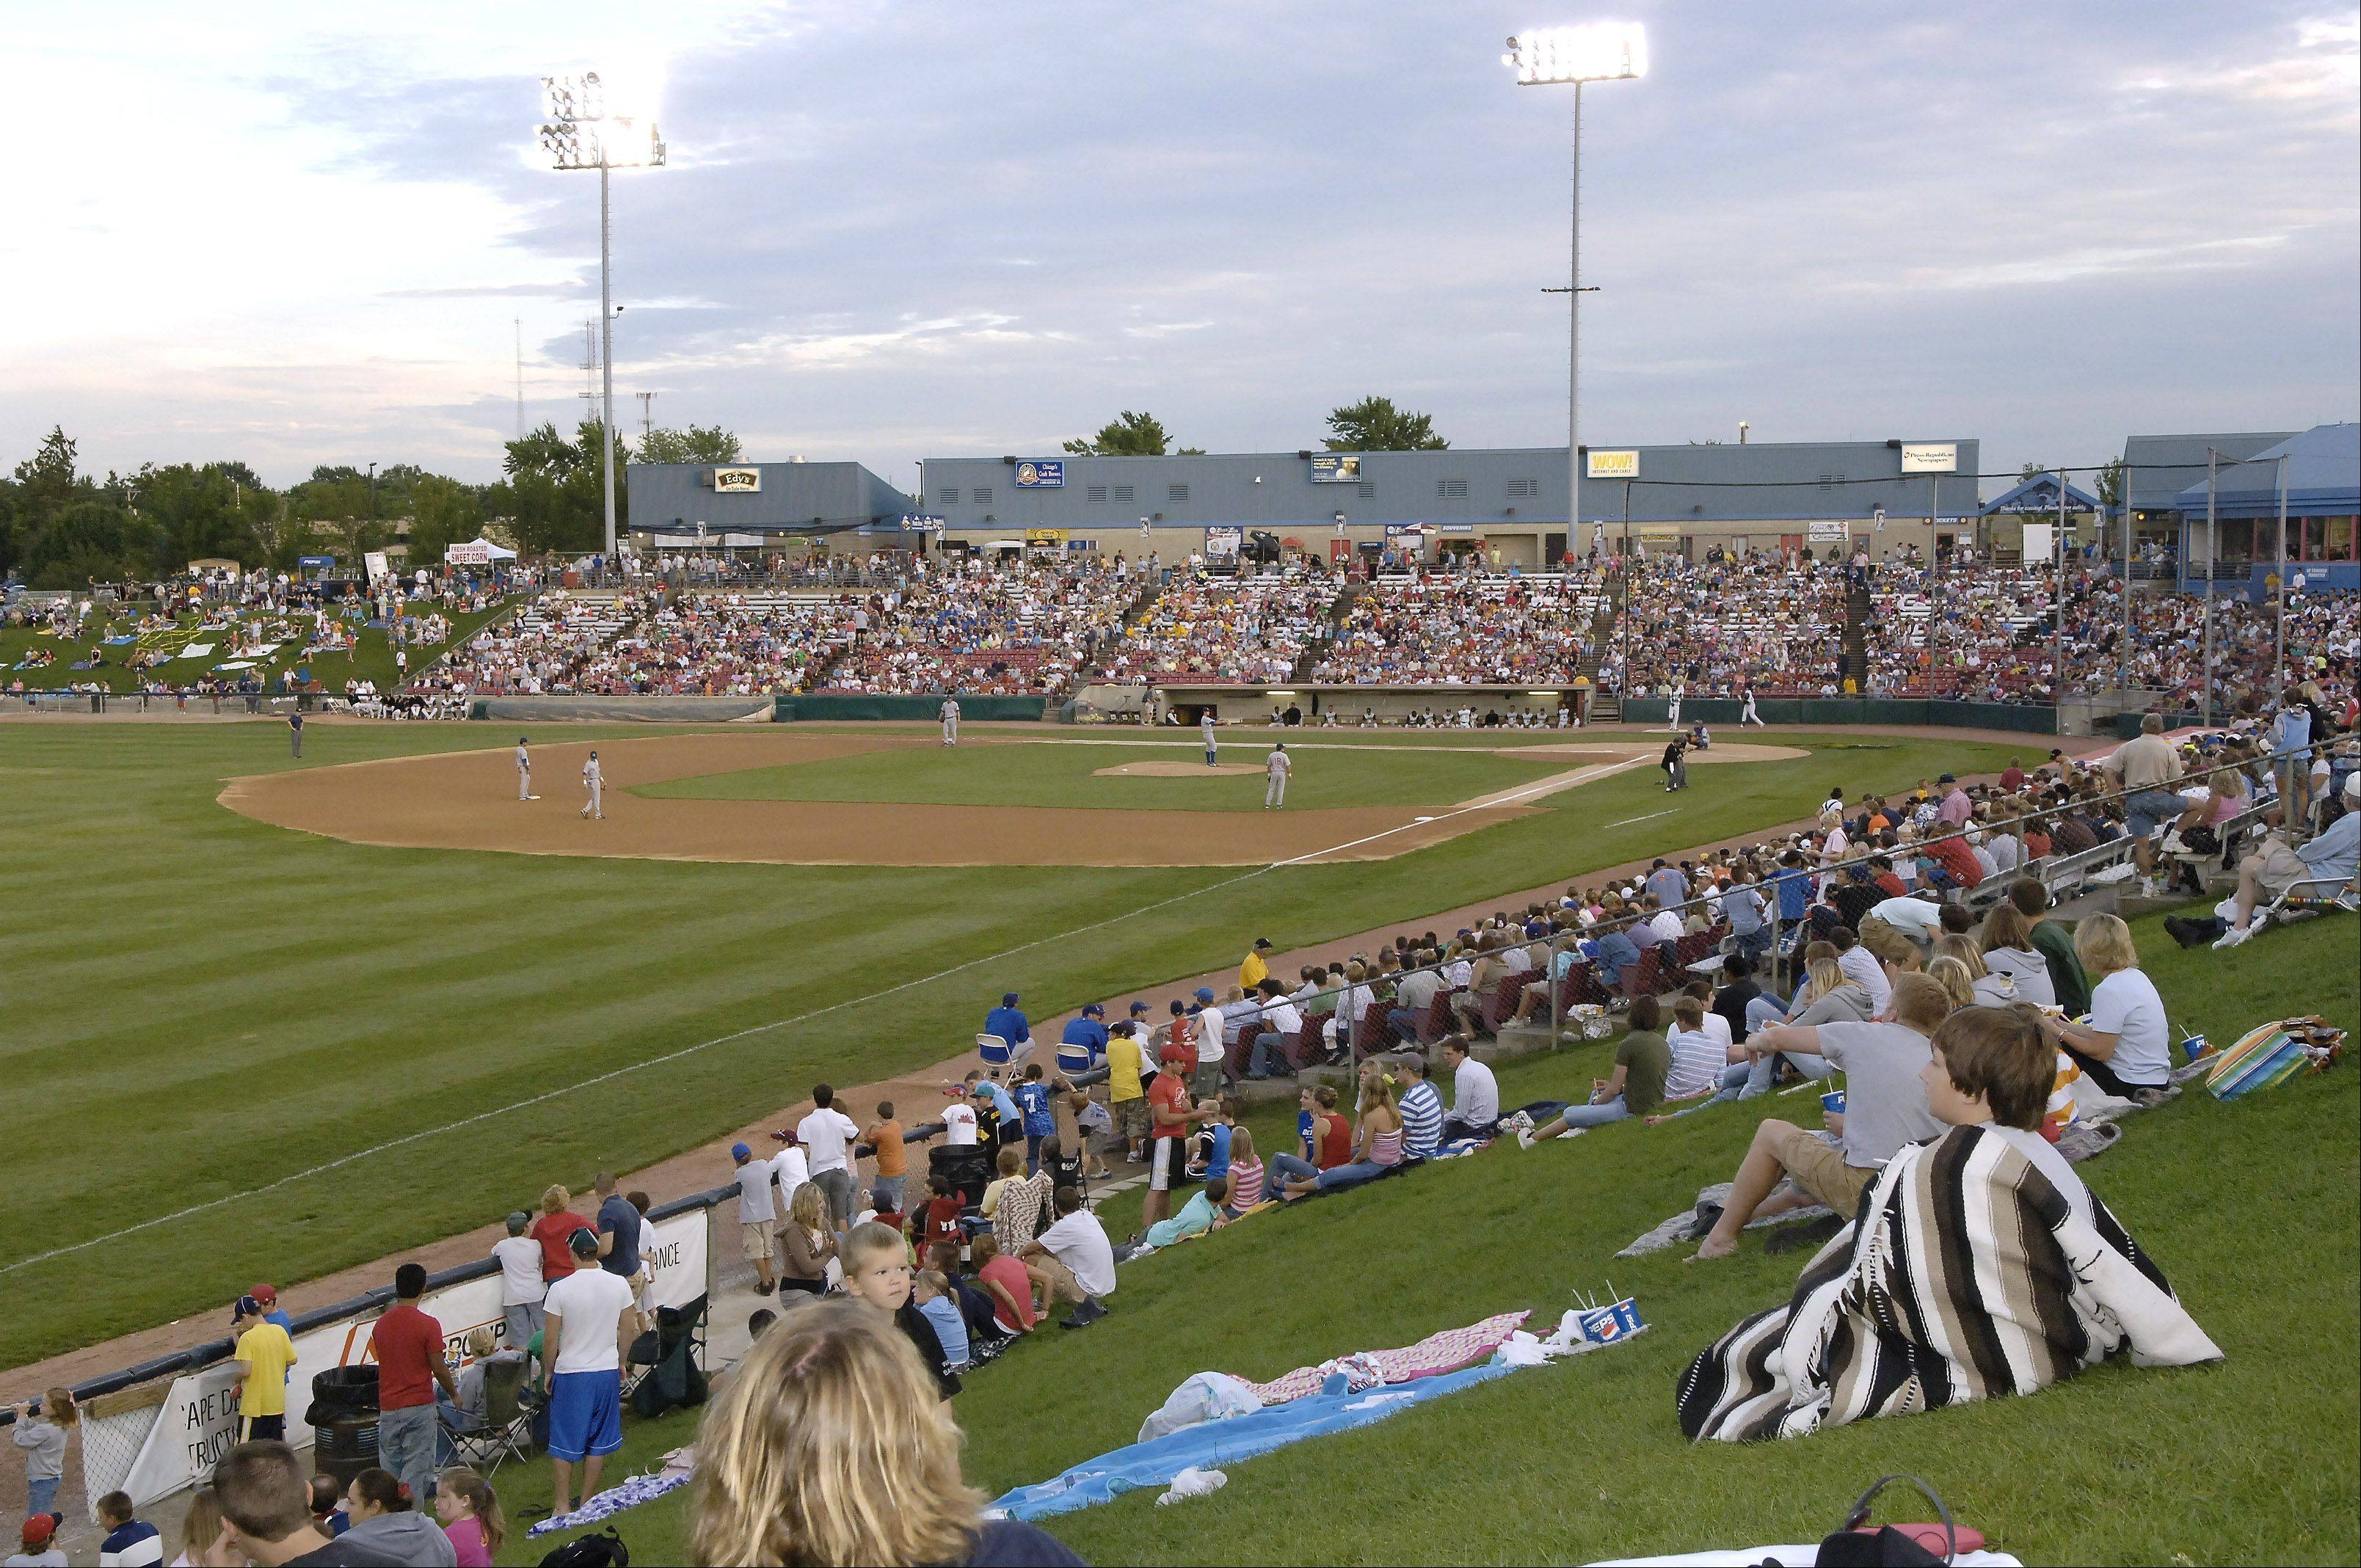 The Kane County Cougars will be affiliated with the Cubs for at least the next two years starting with the 2013 season.